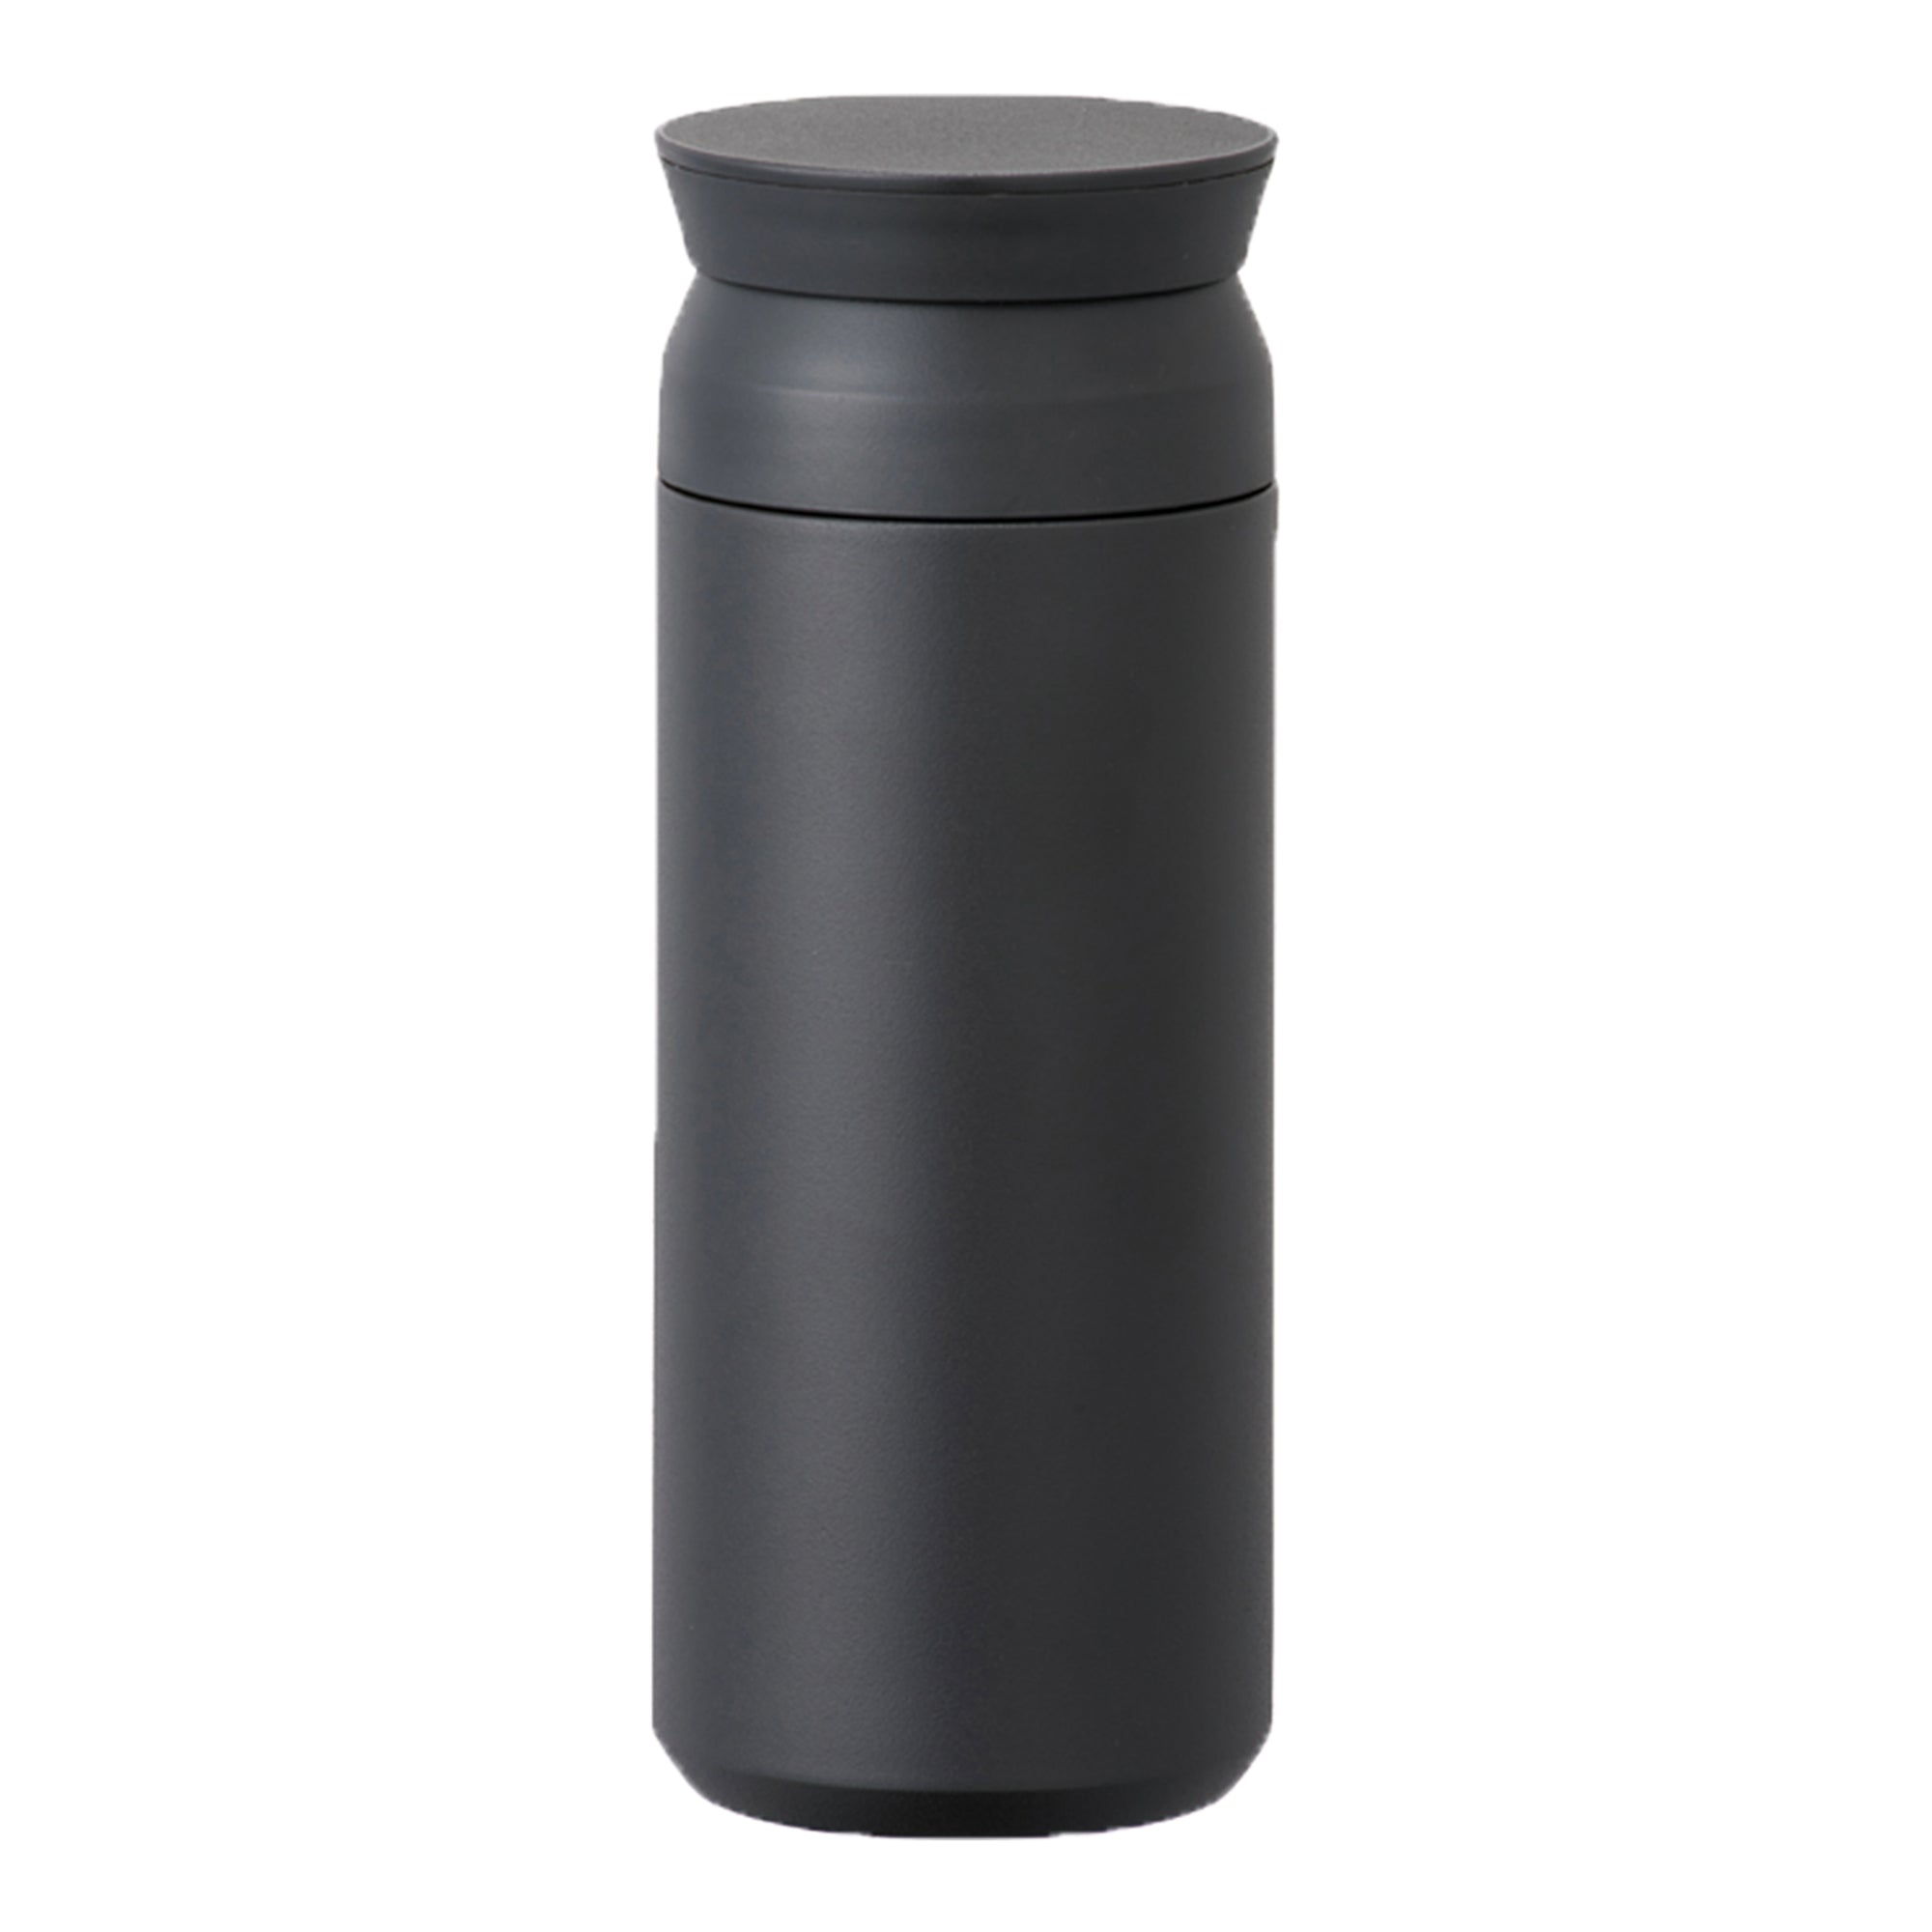 Mug Tumbler Black 350ml - Kinto - Espresso Gear